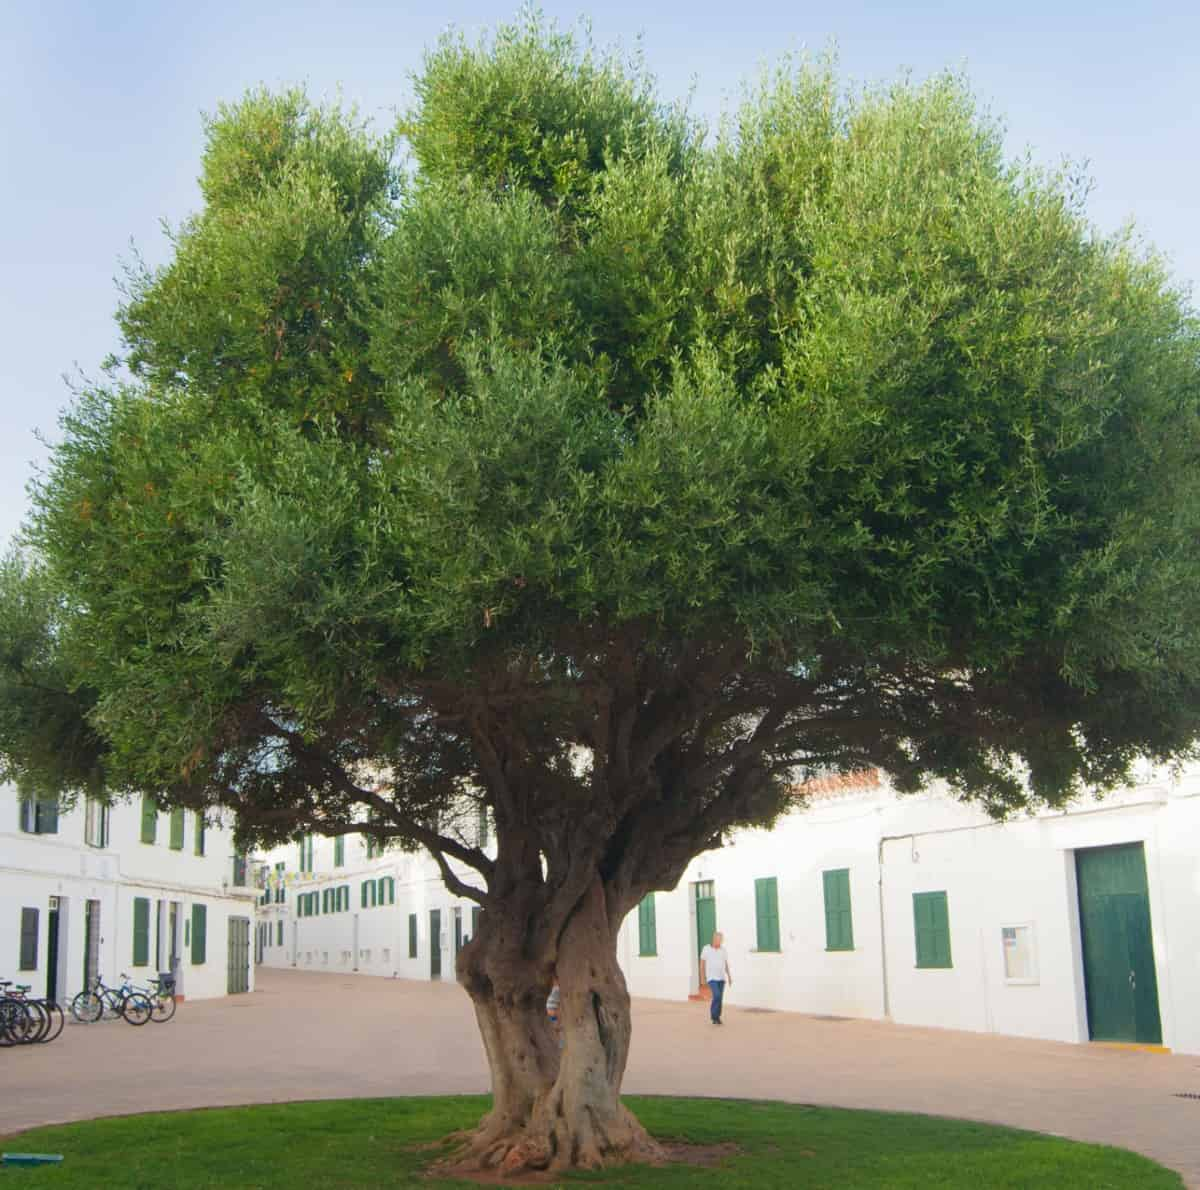 Fruitless olive trees have an attractive twisty trunk and branches.